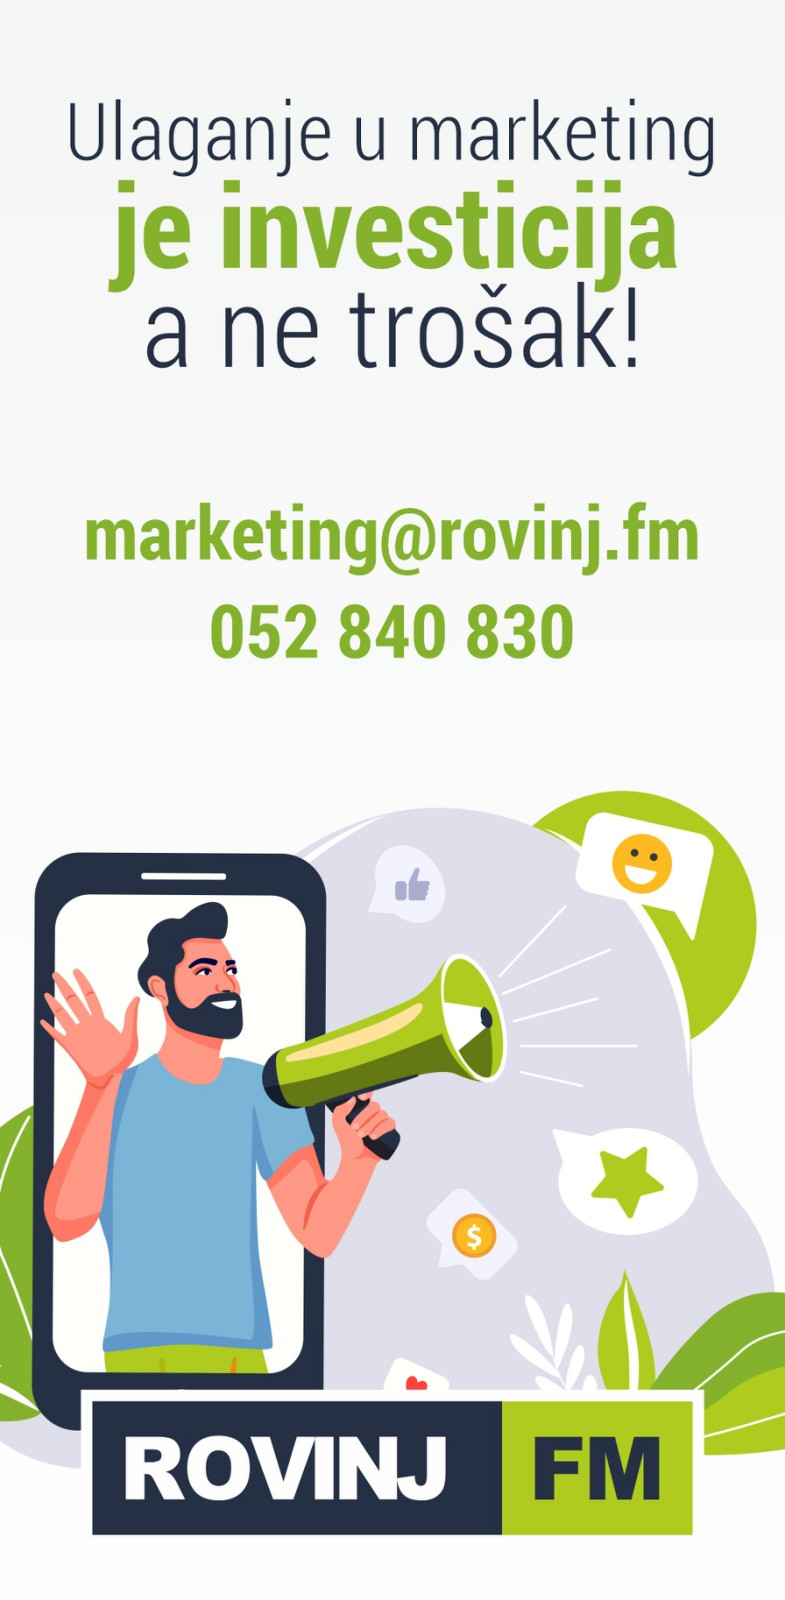 Marketing - Rovinj FM